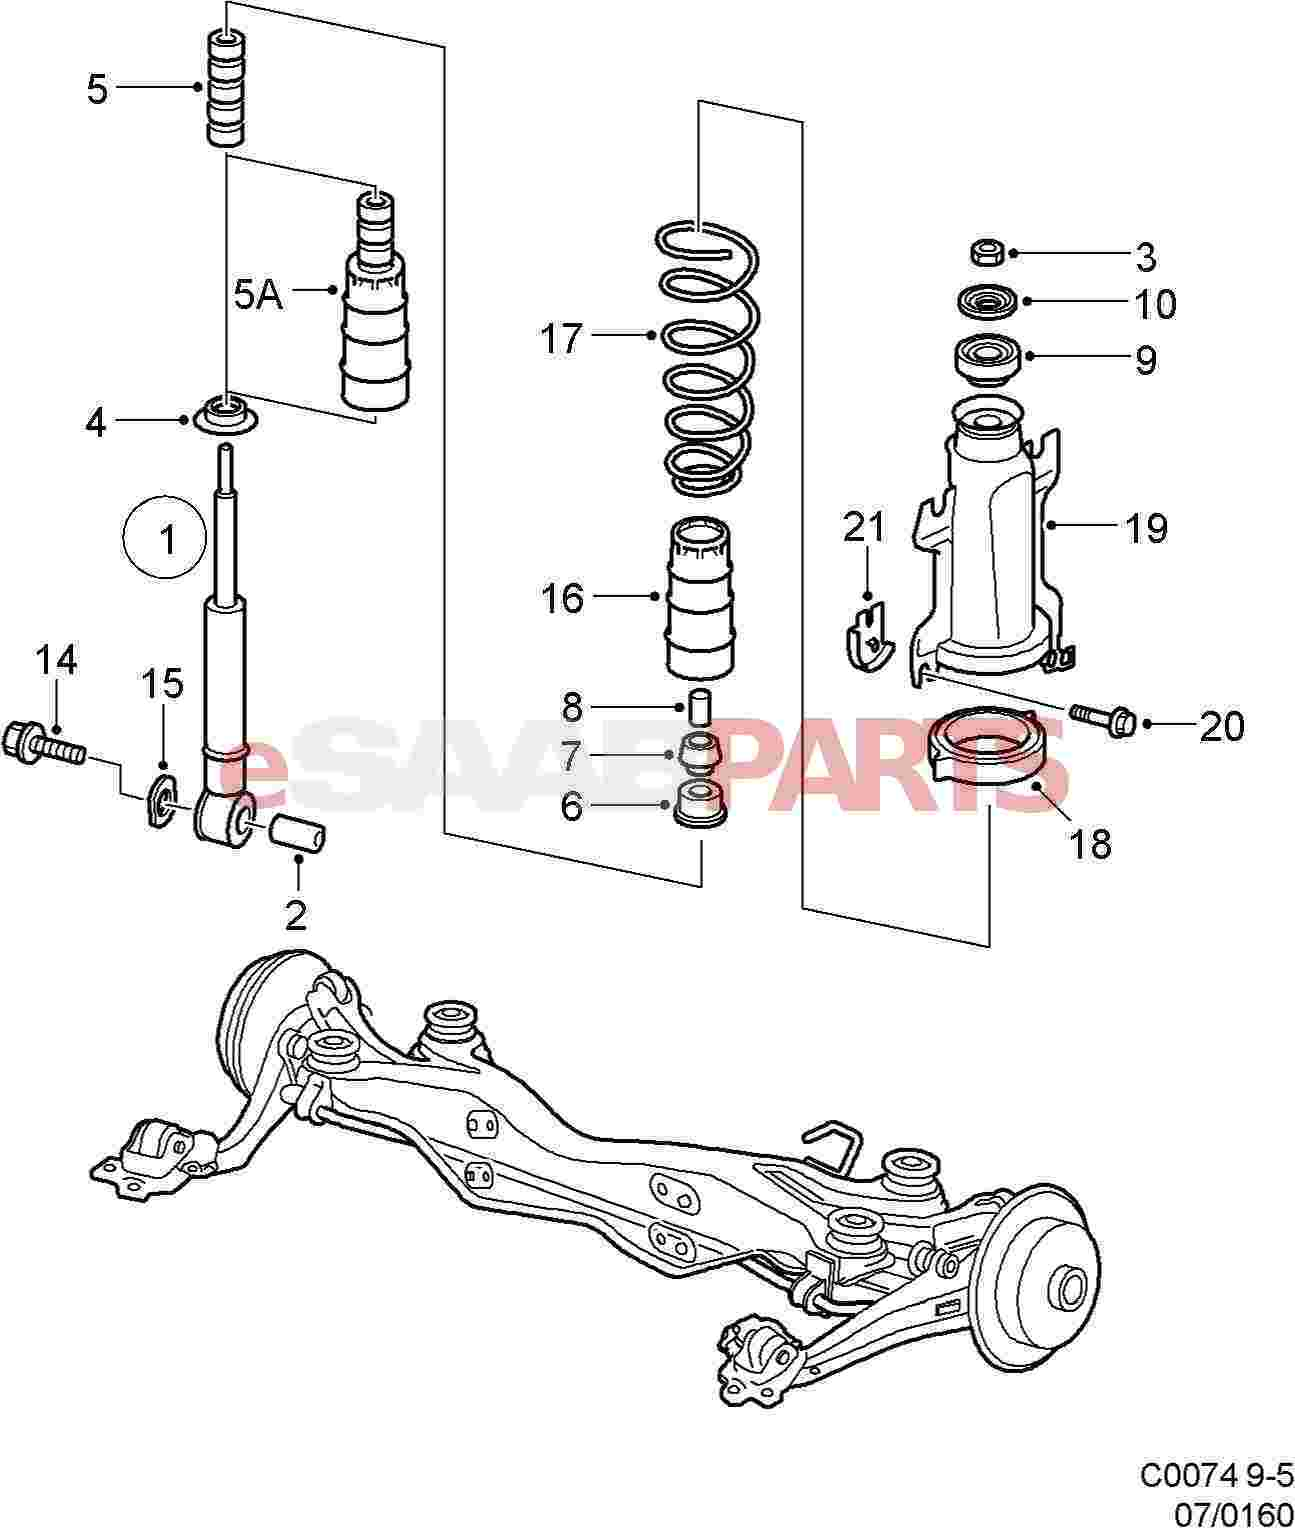 hight resolution of 2002 saab 9 3 parts diagram wiring diagram schematics rh ksefanzone com saab 2 3 turbo engine diagram saab 9 3 parts diagram